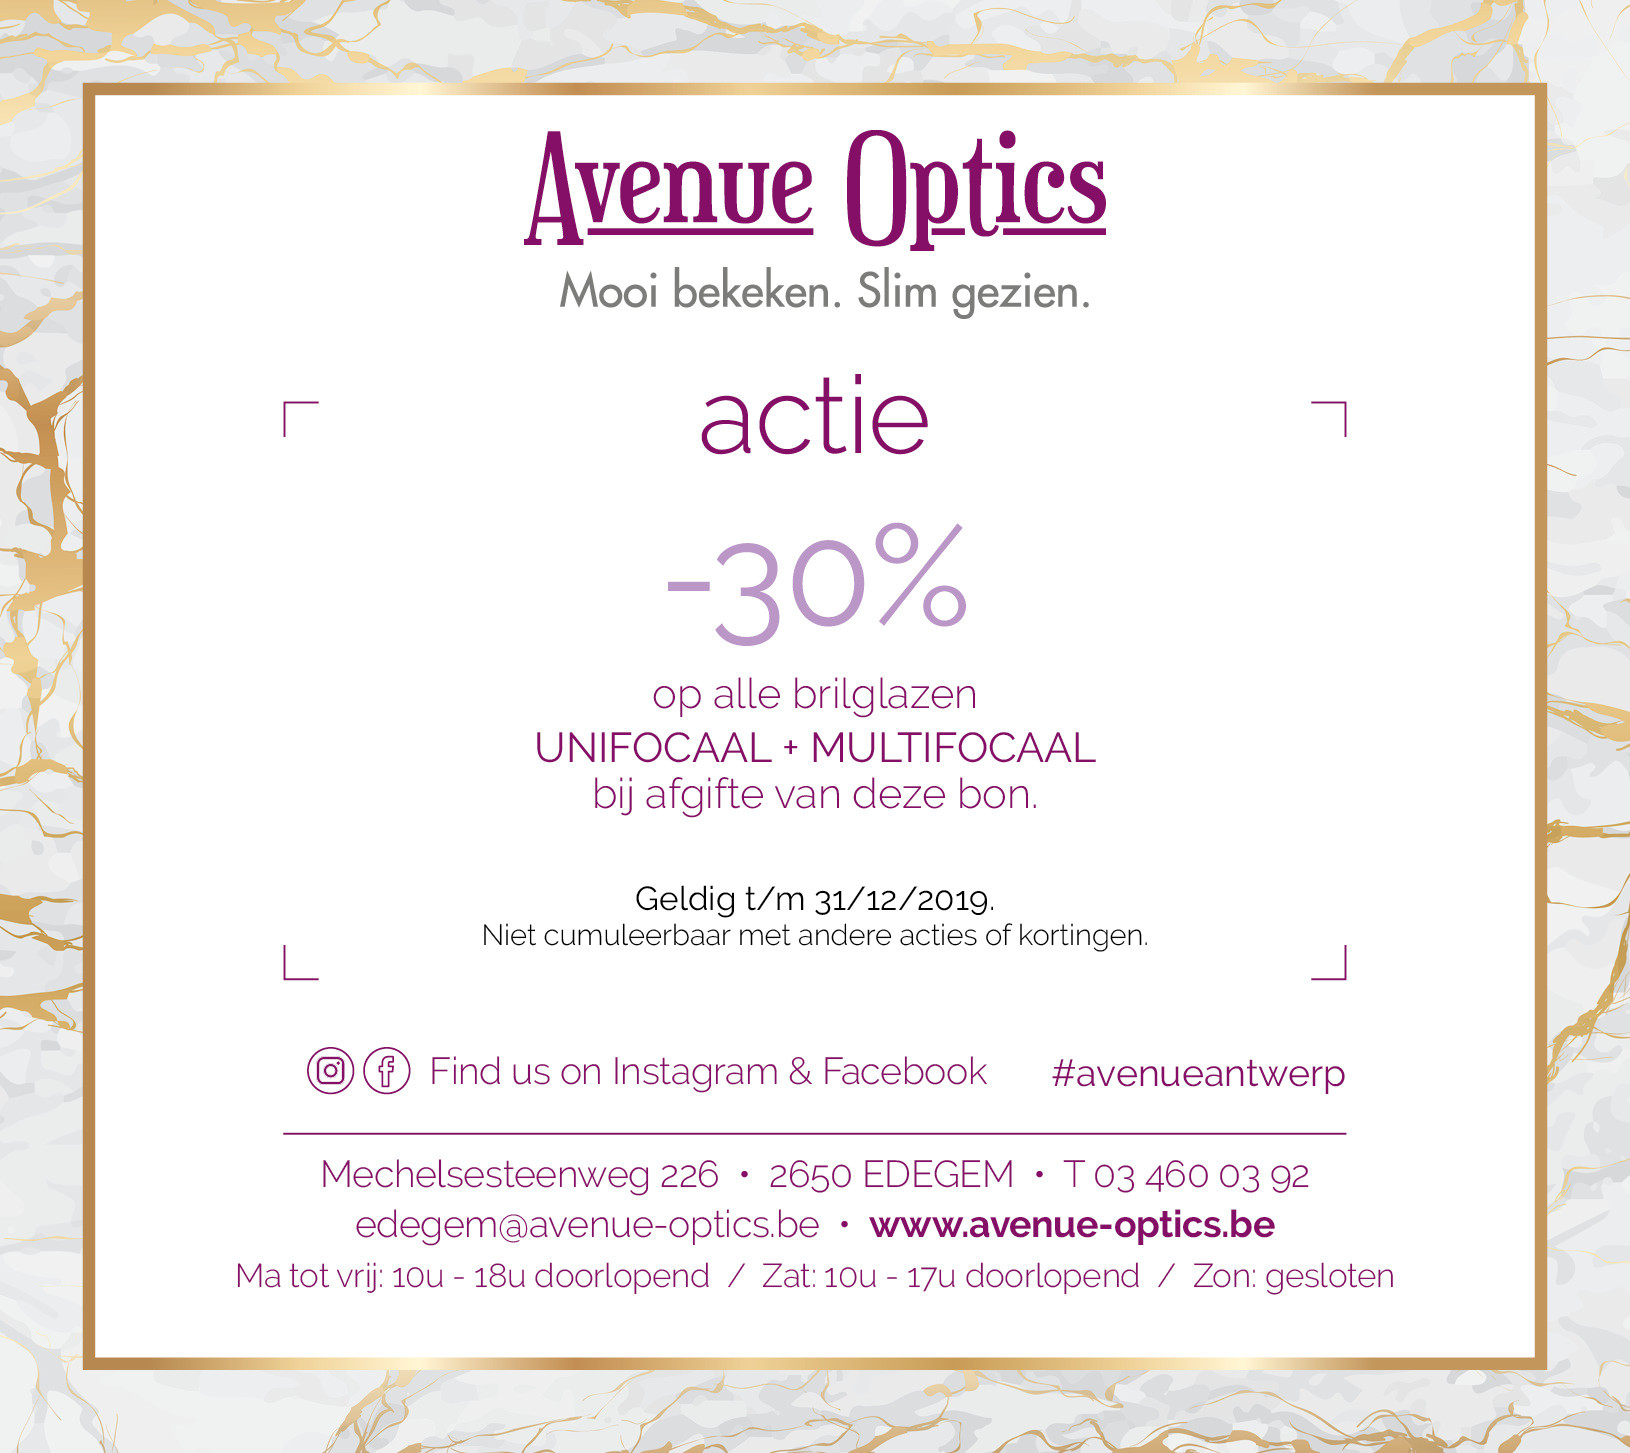 avenue_optics_edegem_sept_2019.jpg